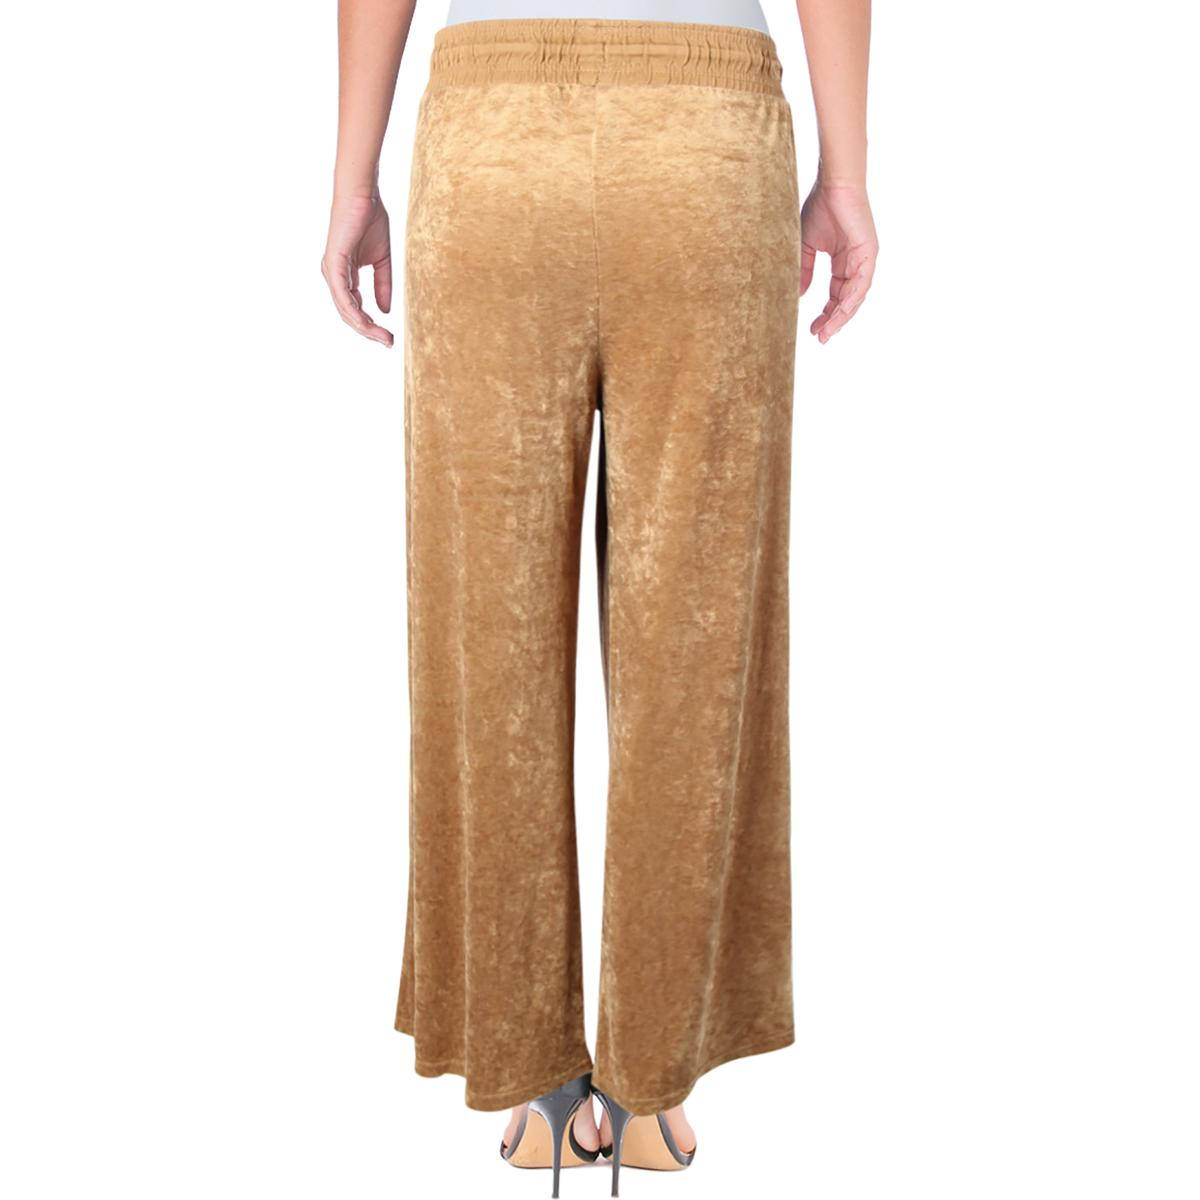 6418b7cc0c Free People Womens Gold Velour Pull On Casual Wide Leg Pants M BHFO ...